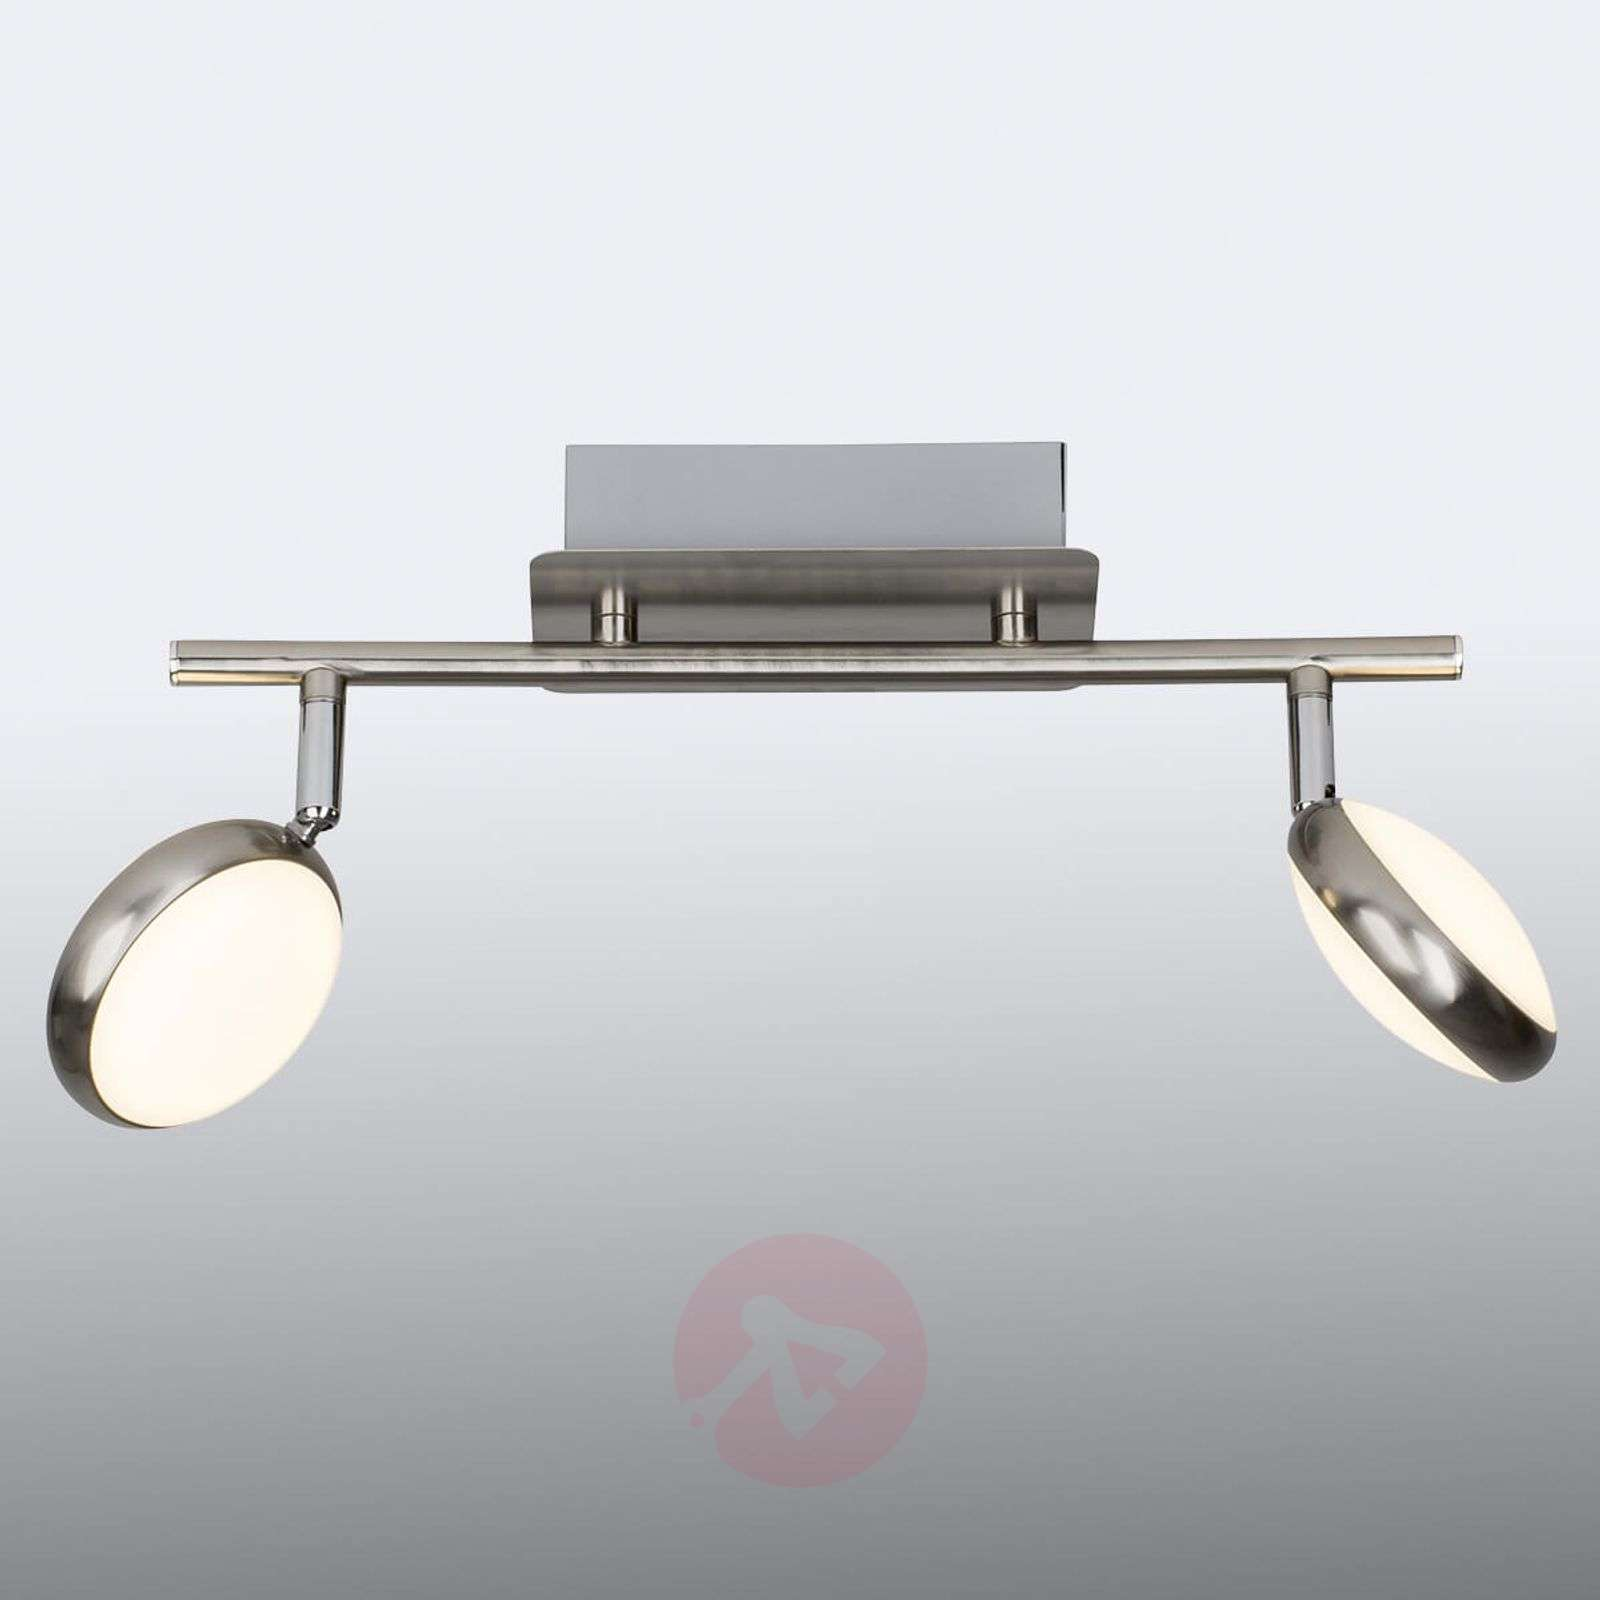 Lampa sufitowa LED Double 2-pkt.